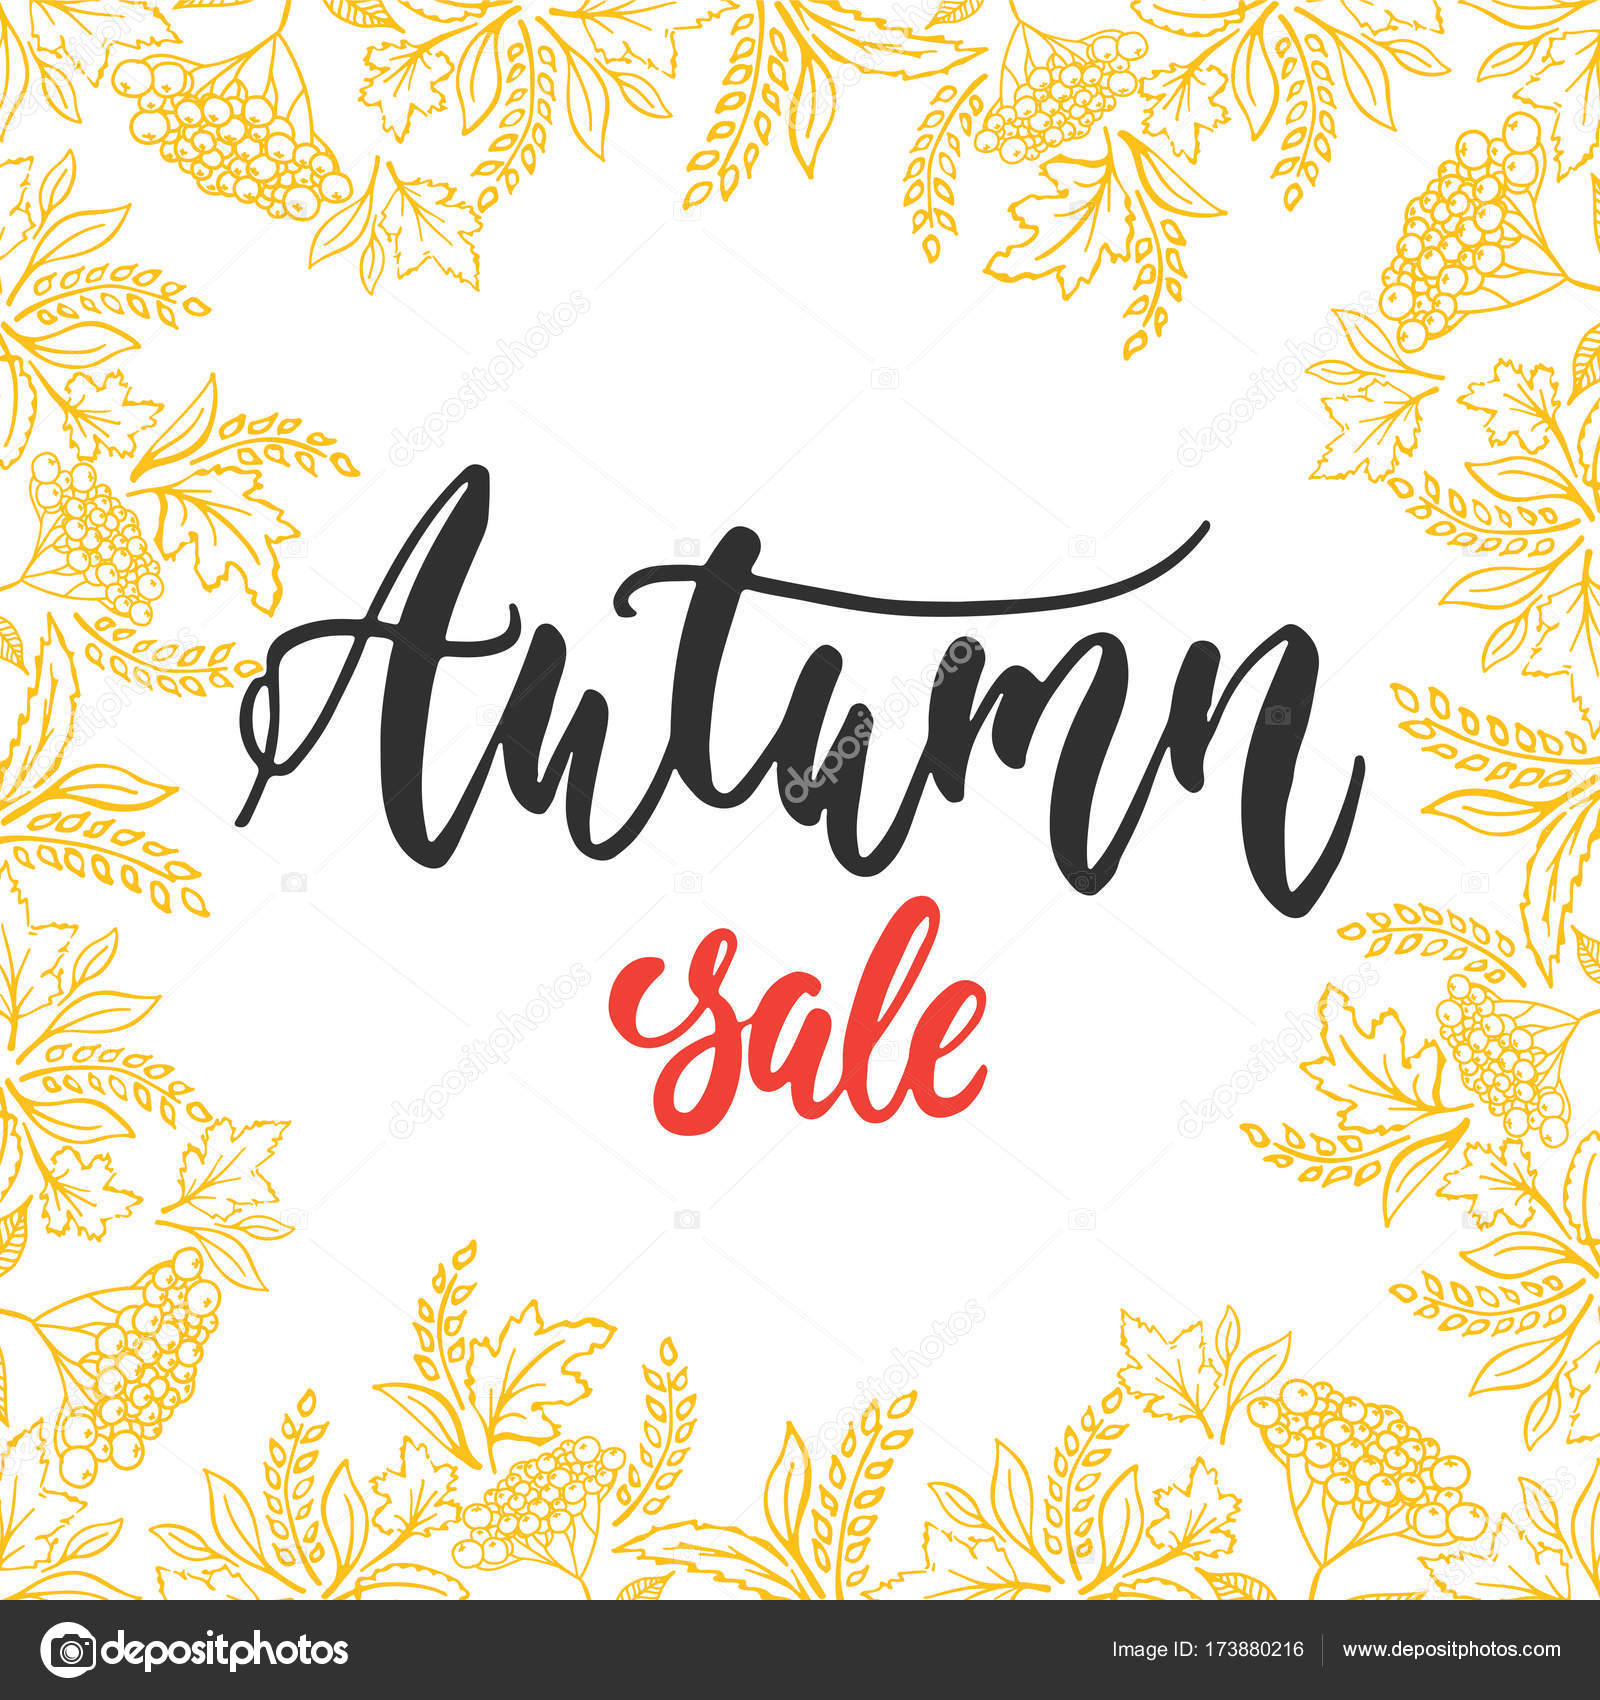 Autumn Fall Sale   Hand Drawn Latin Lettering Quote With Wreath From Leaves  Isolated On The White Background. Fun Brush Ink Inscription For Greeting  Card Or ...